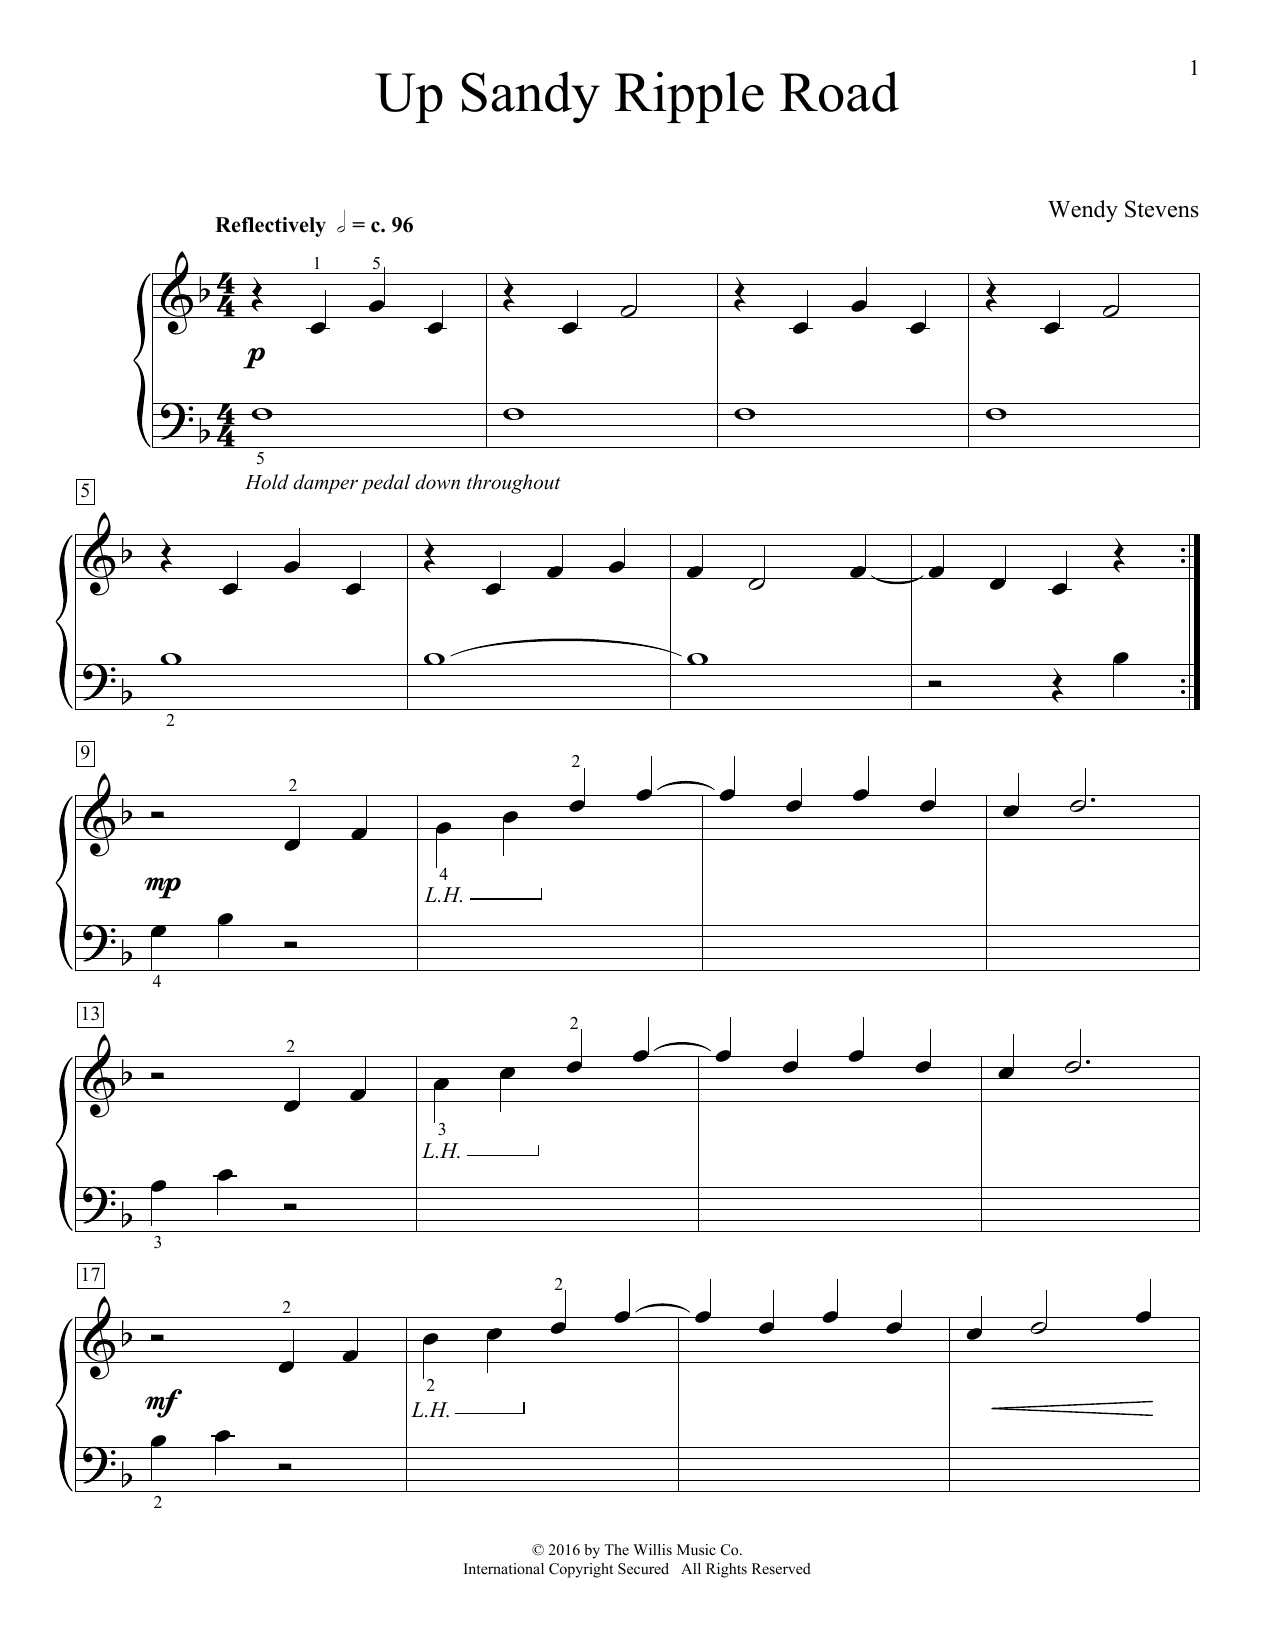 Wendy Stevens Up Sandy Ripple Road sheet music notes and chords. Download Printable PDF.